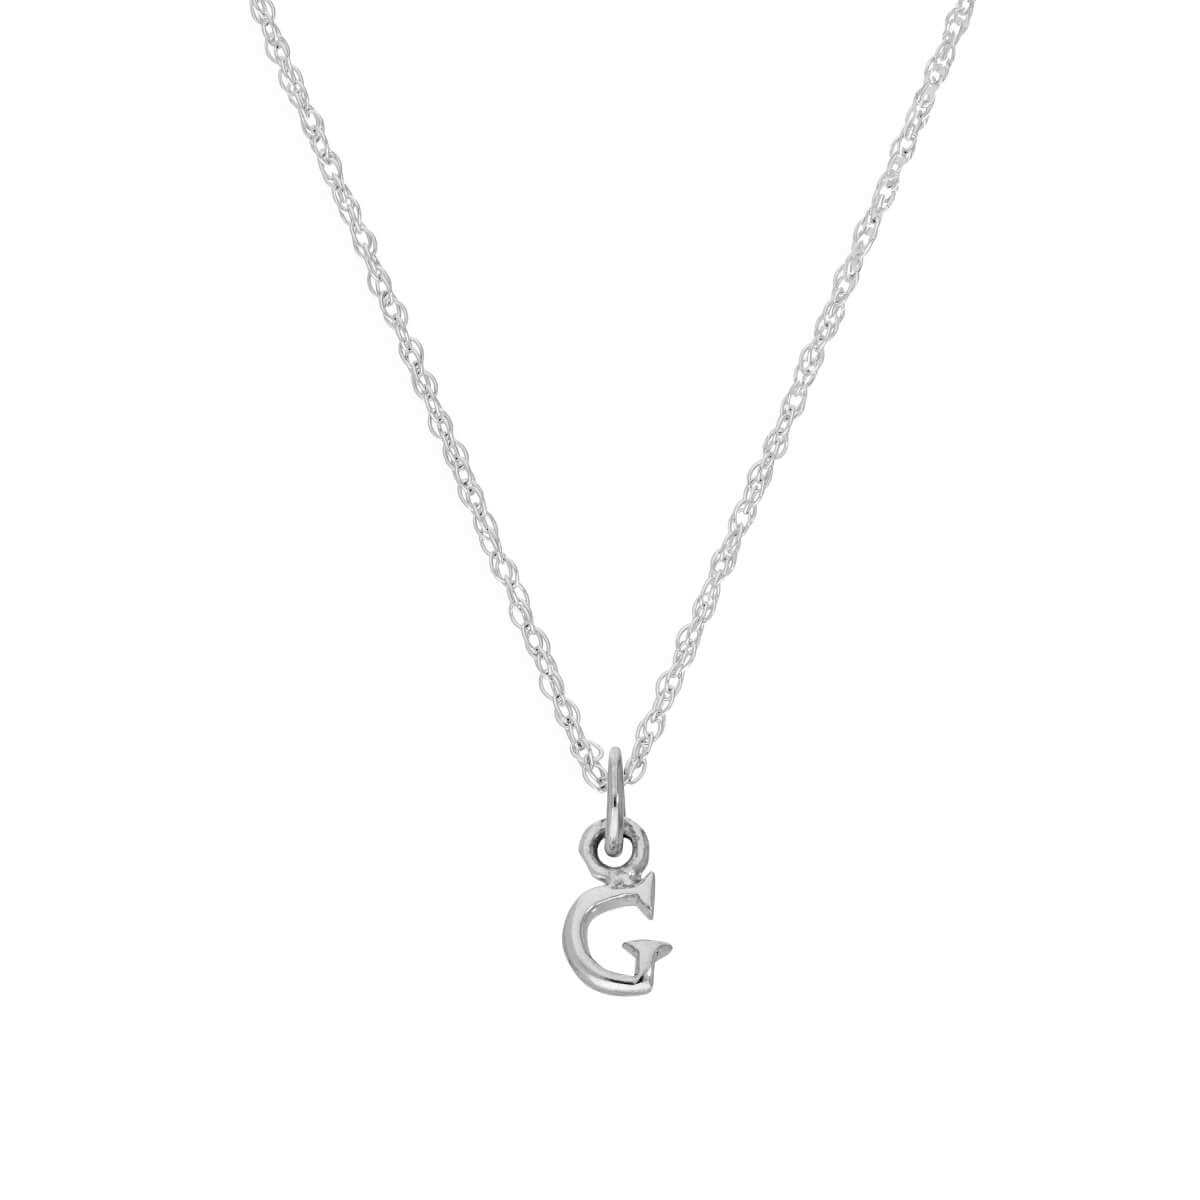 Tiny Sterling Silver Alphabet Letter G Pendant Necklace 14 - 22 Inches